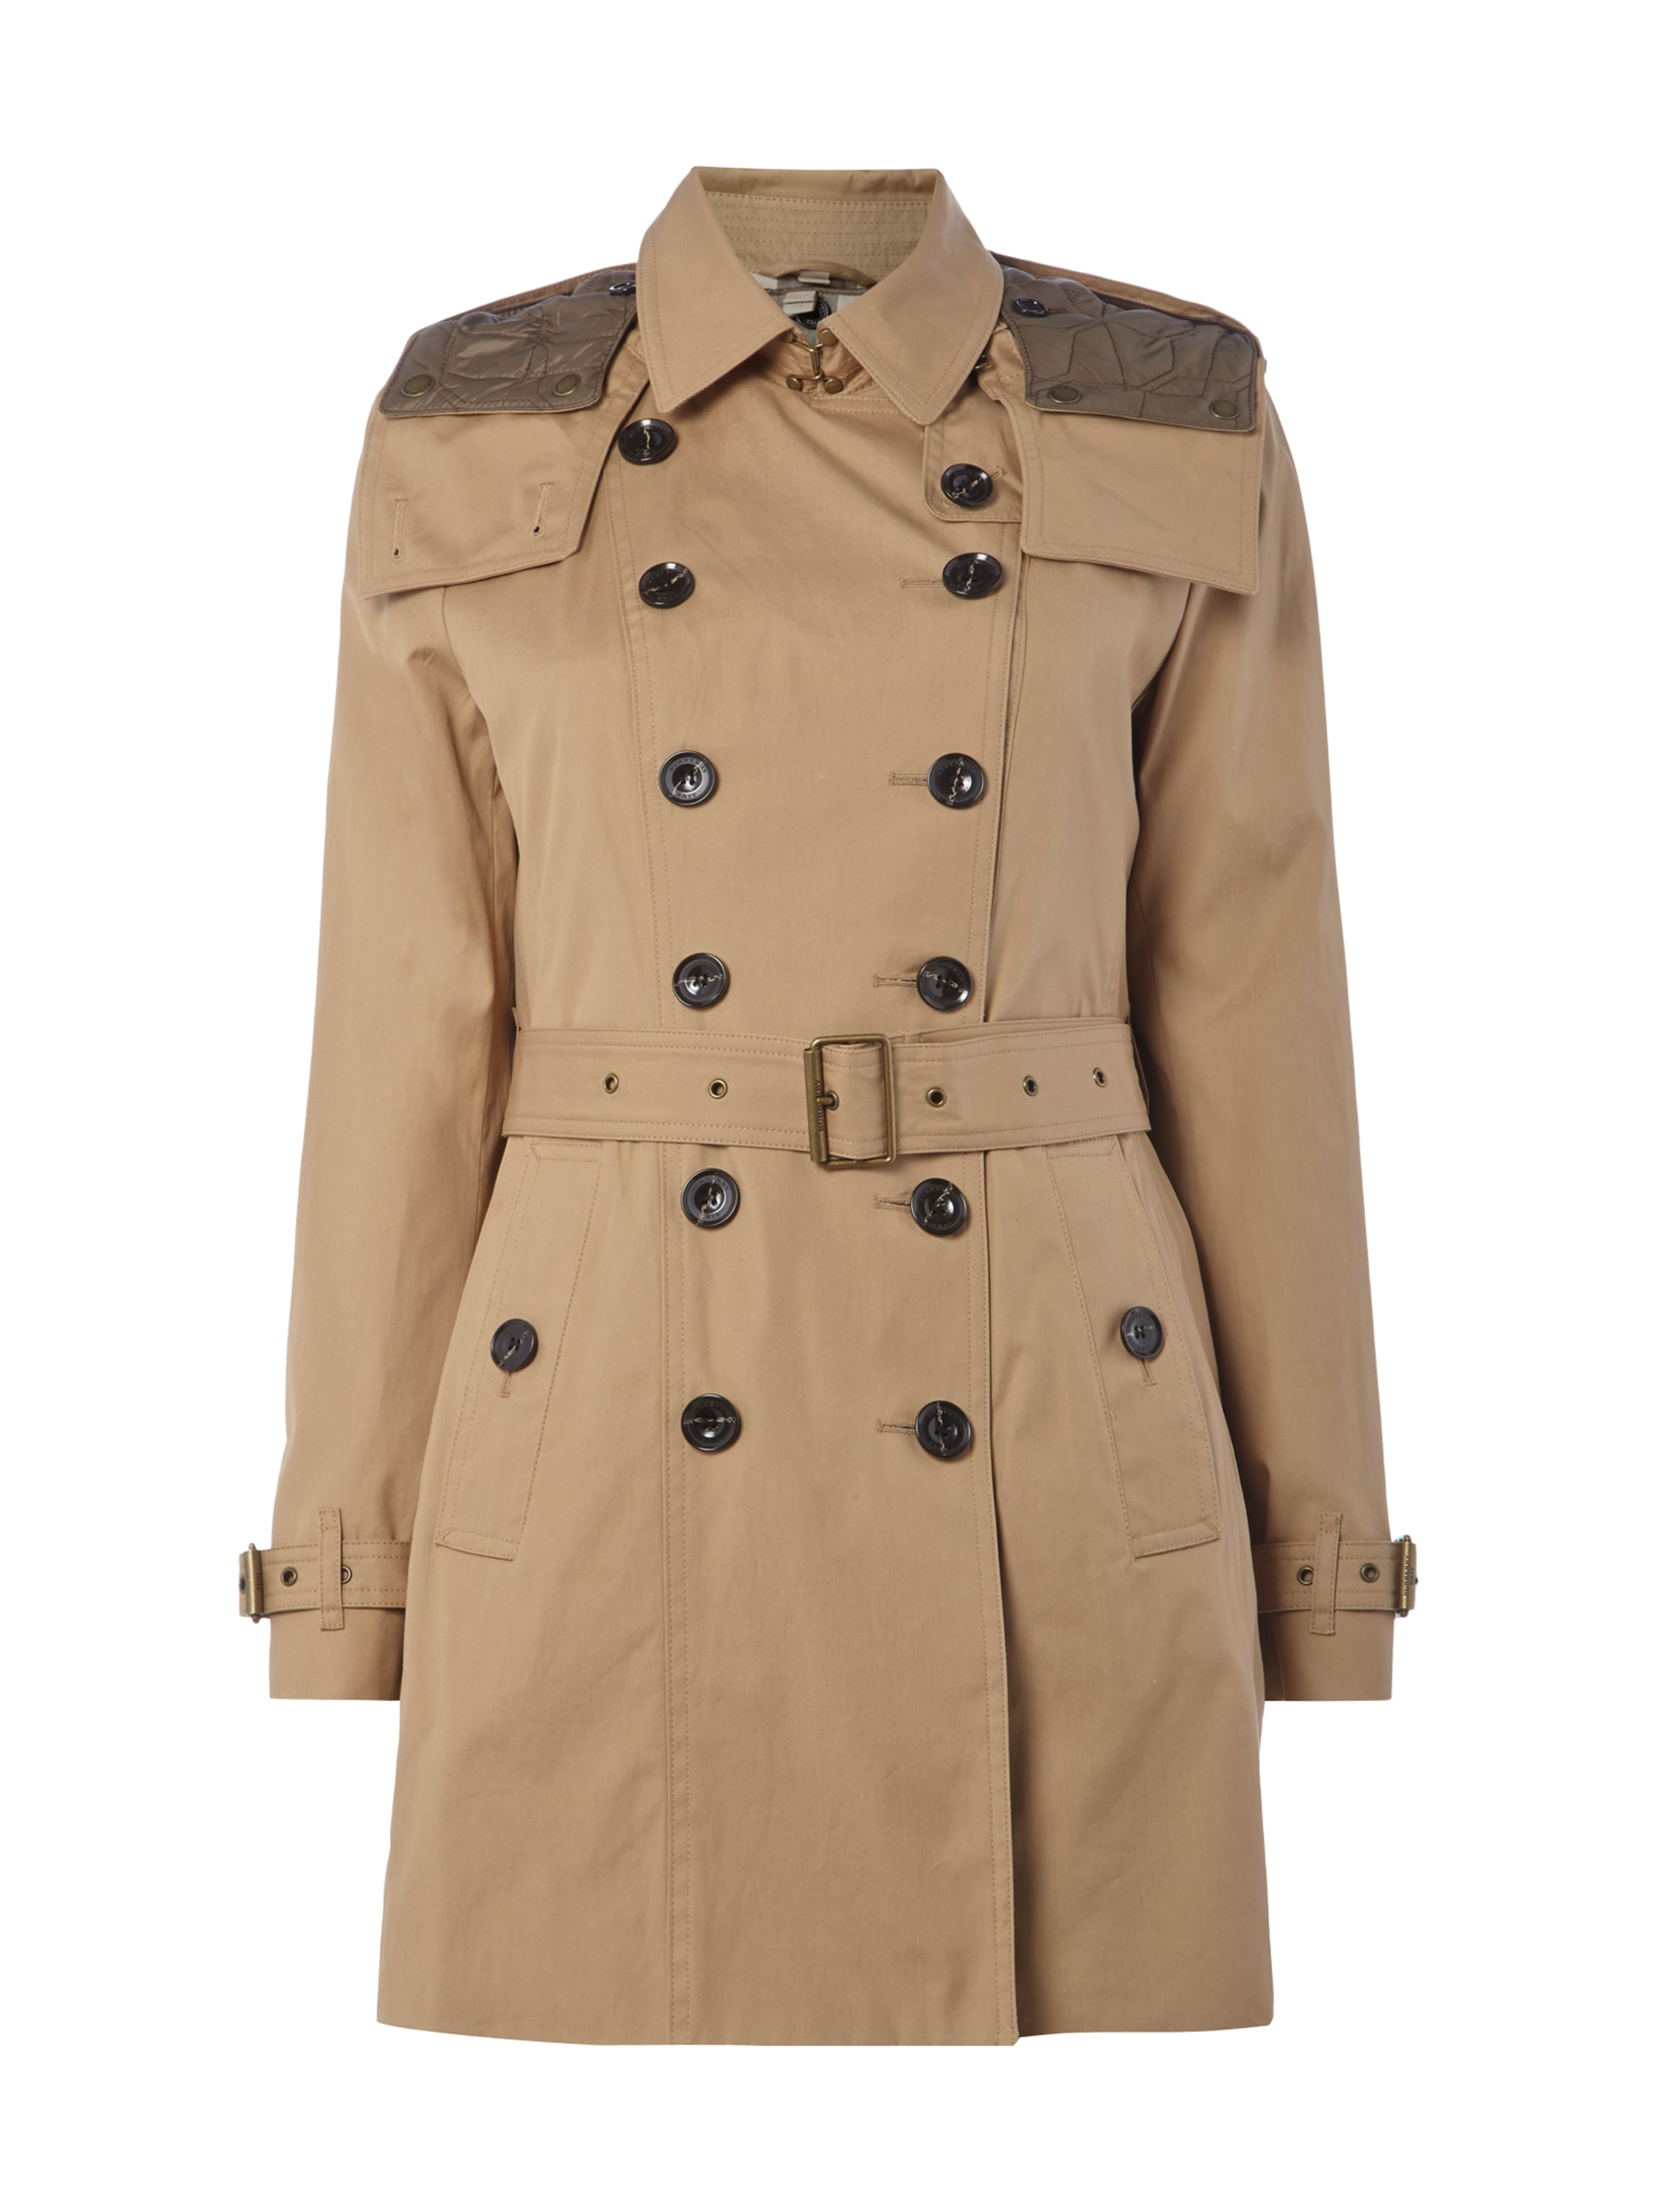 burberry brit trenchcoat mit herausnehmbarer steppweste in braun online kaufen 9380796 p c. Black Bedroom Furniture Sets. Home Design Ideas